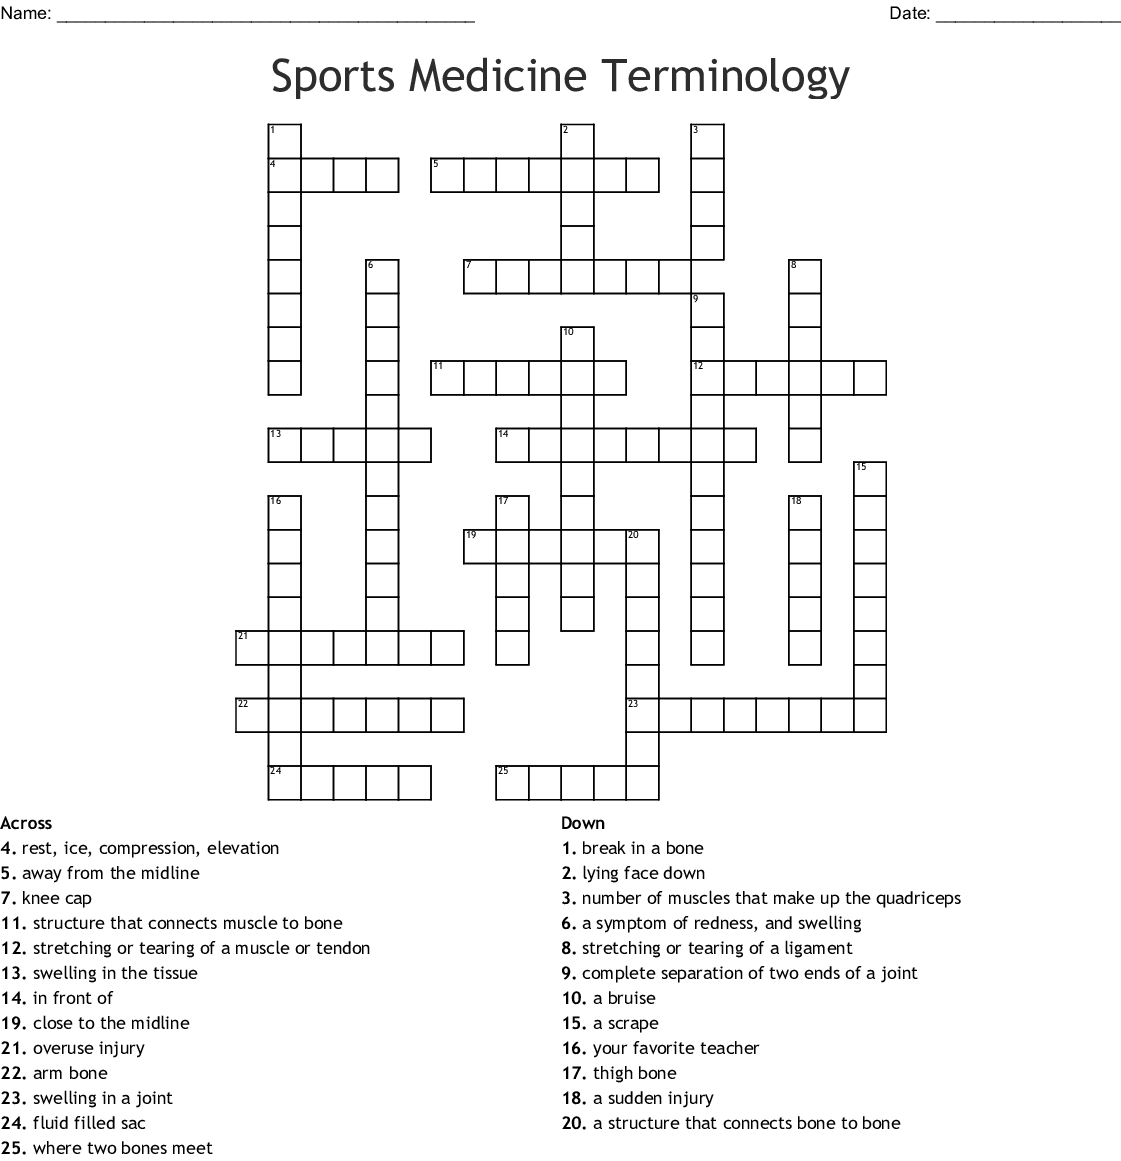 Sports Medicine Terminology Crossword